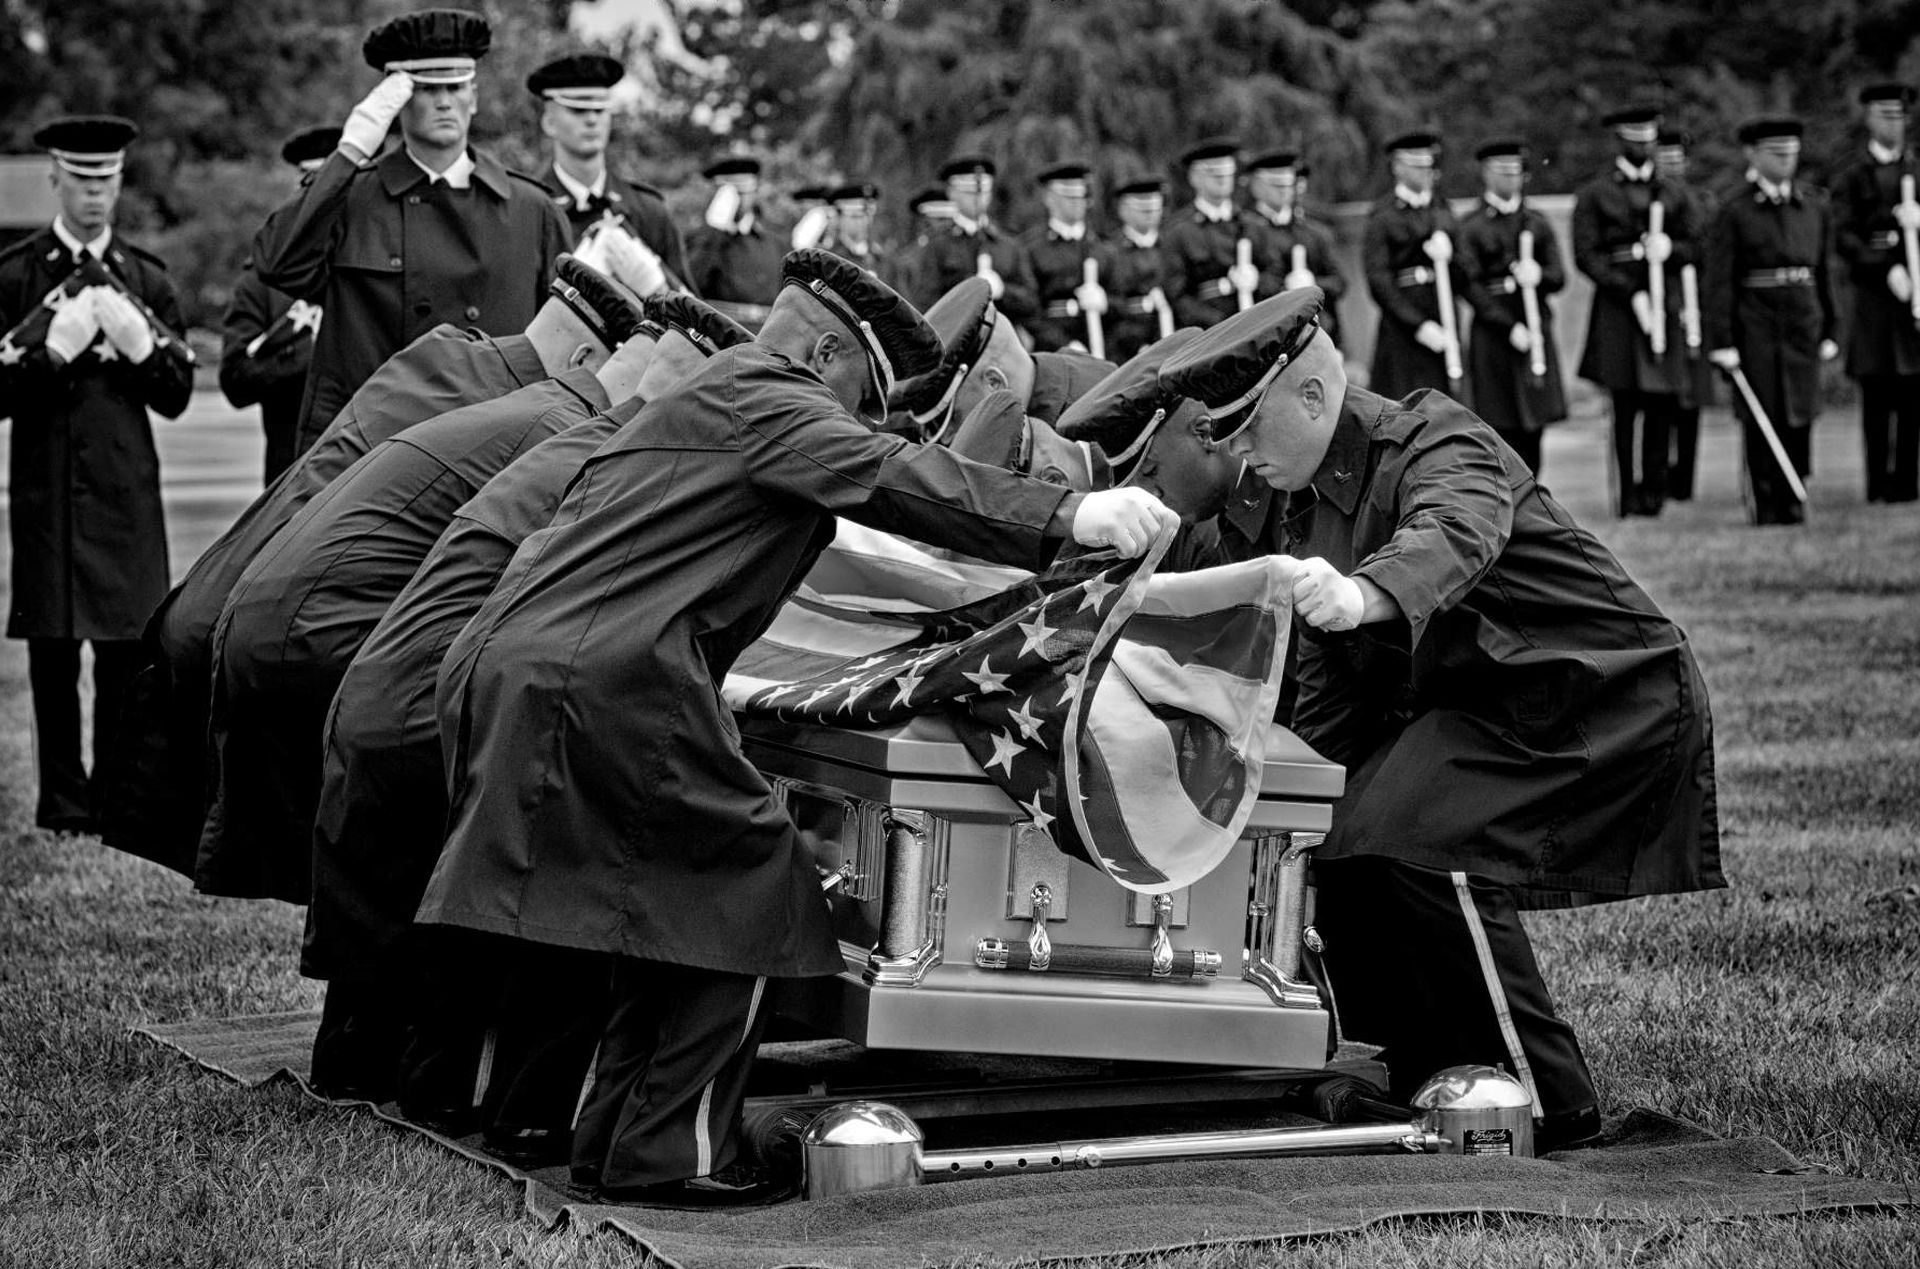 arlington national cemetery photography services